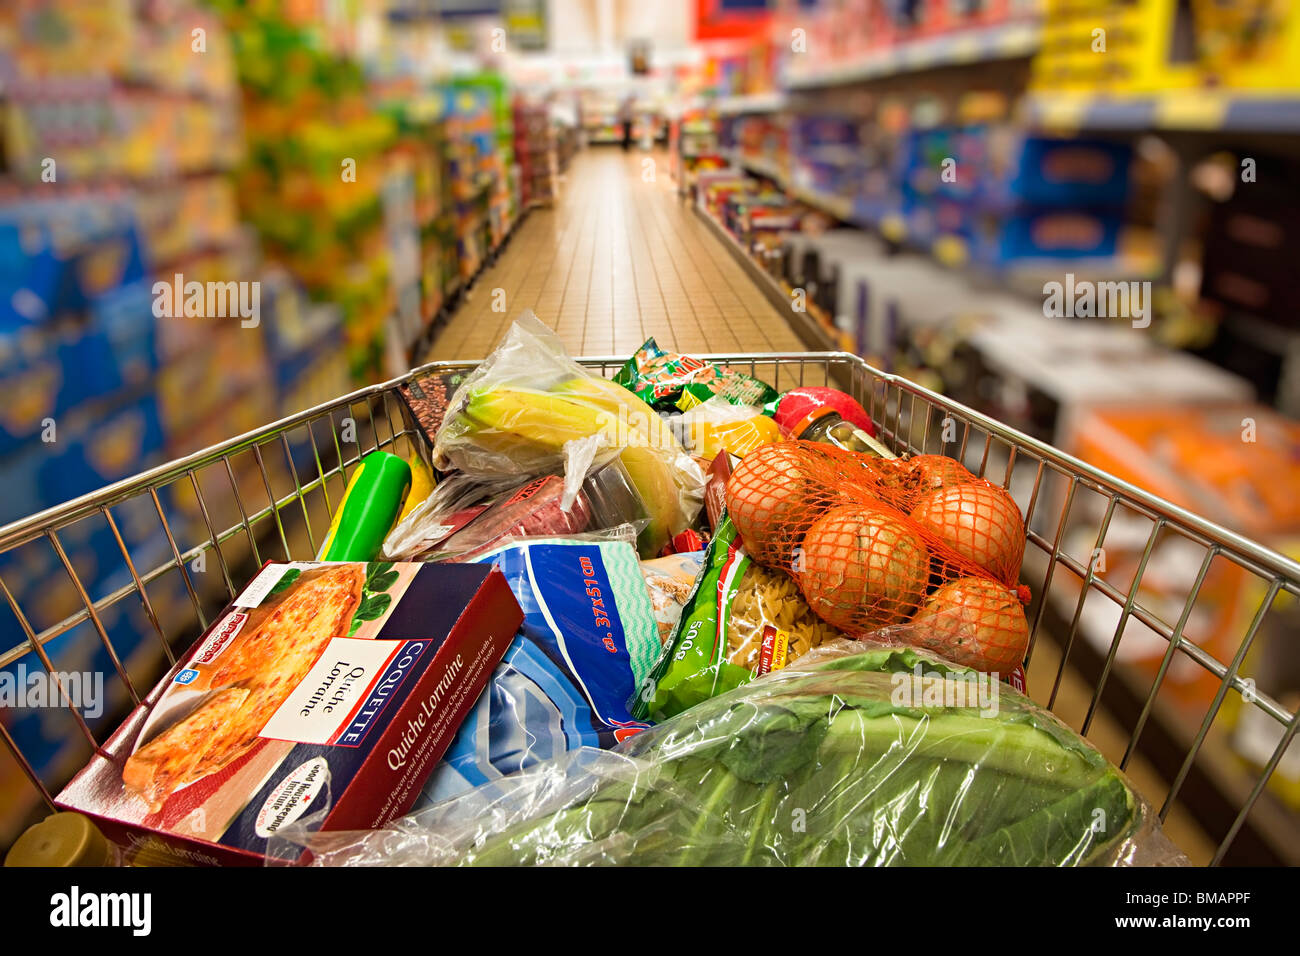 Shopping trolley being pushed down Lidl supermarket aisle Wales UK with person blurred in background - Stock Image